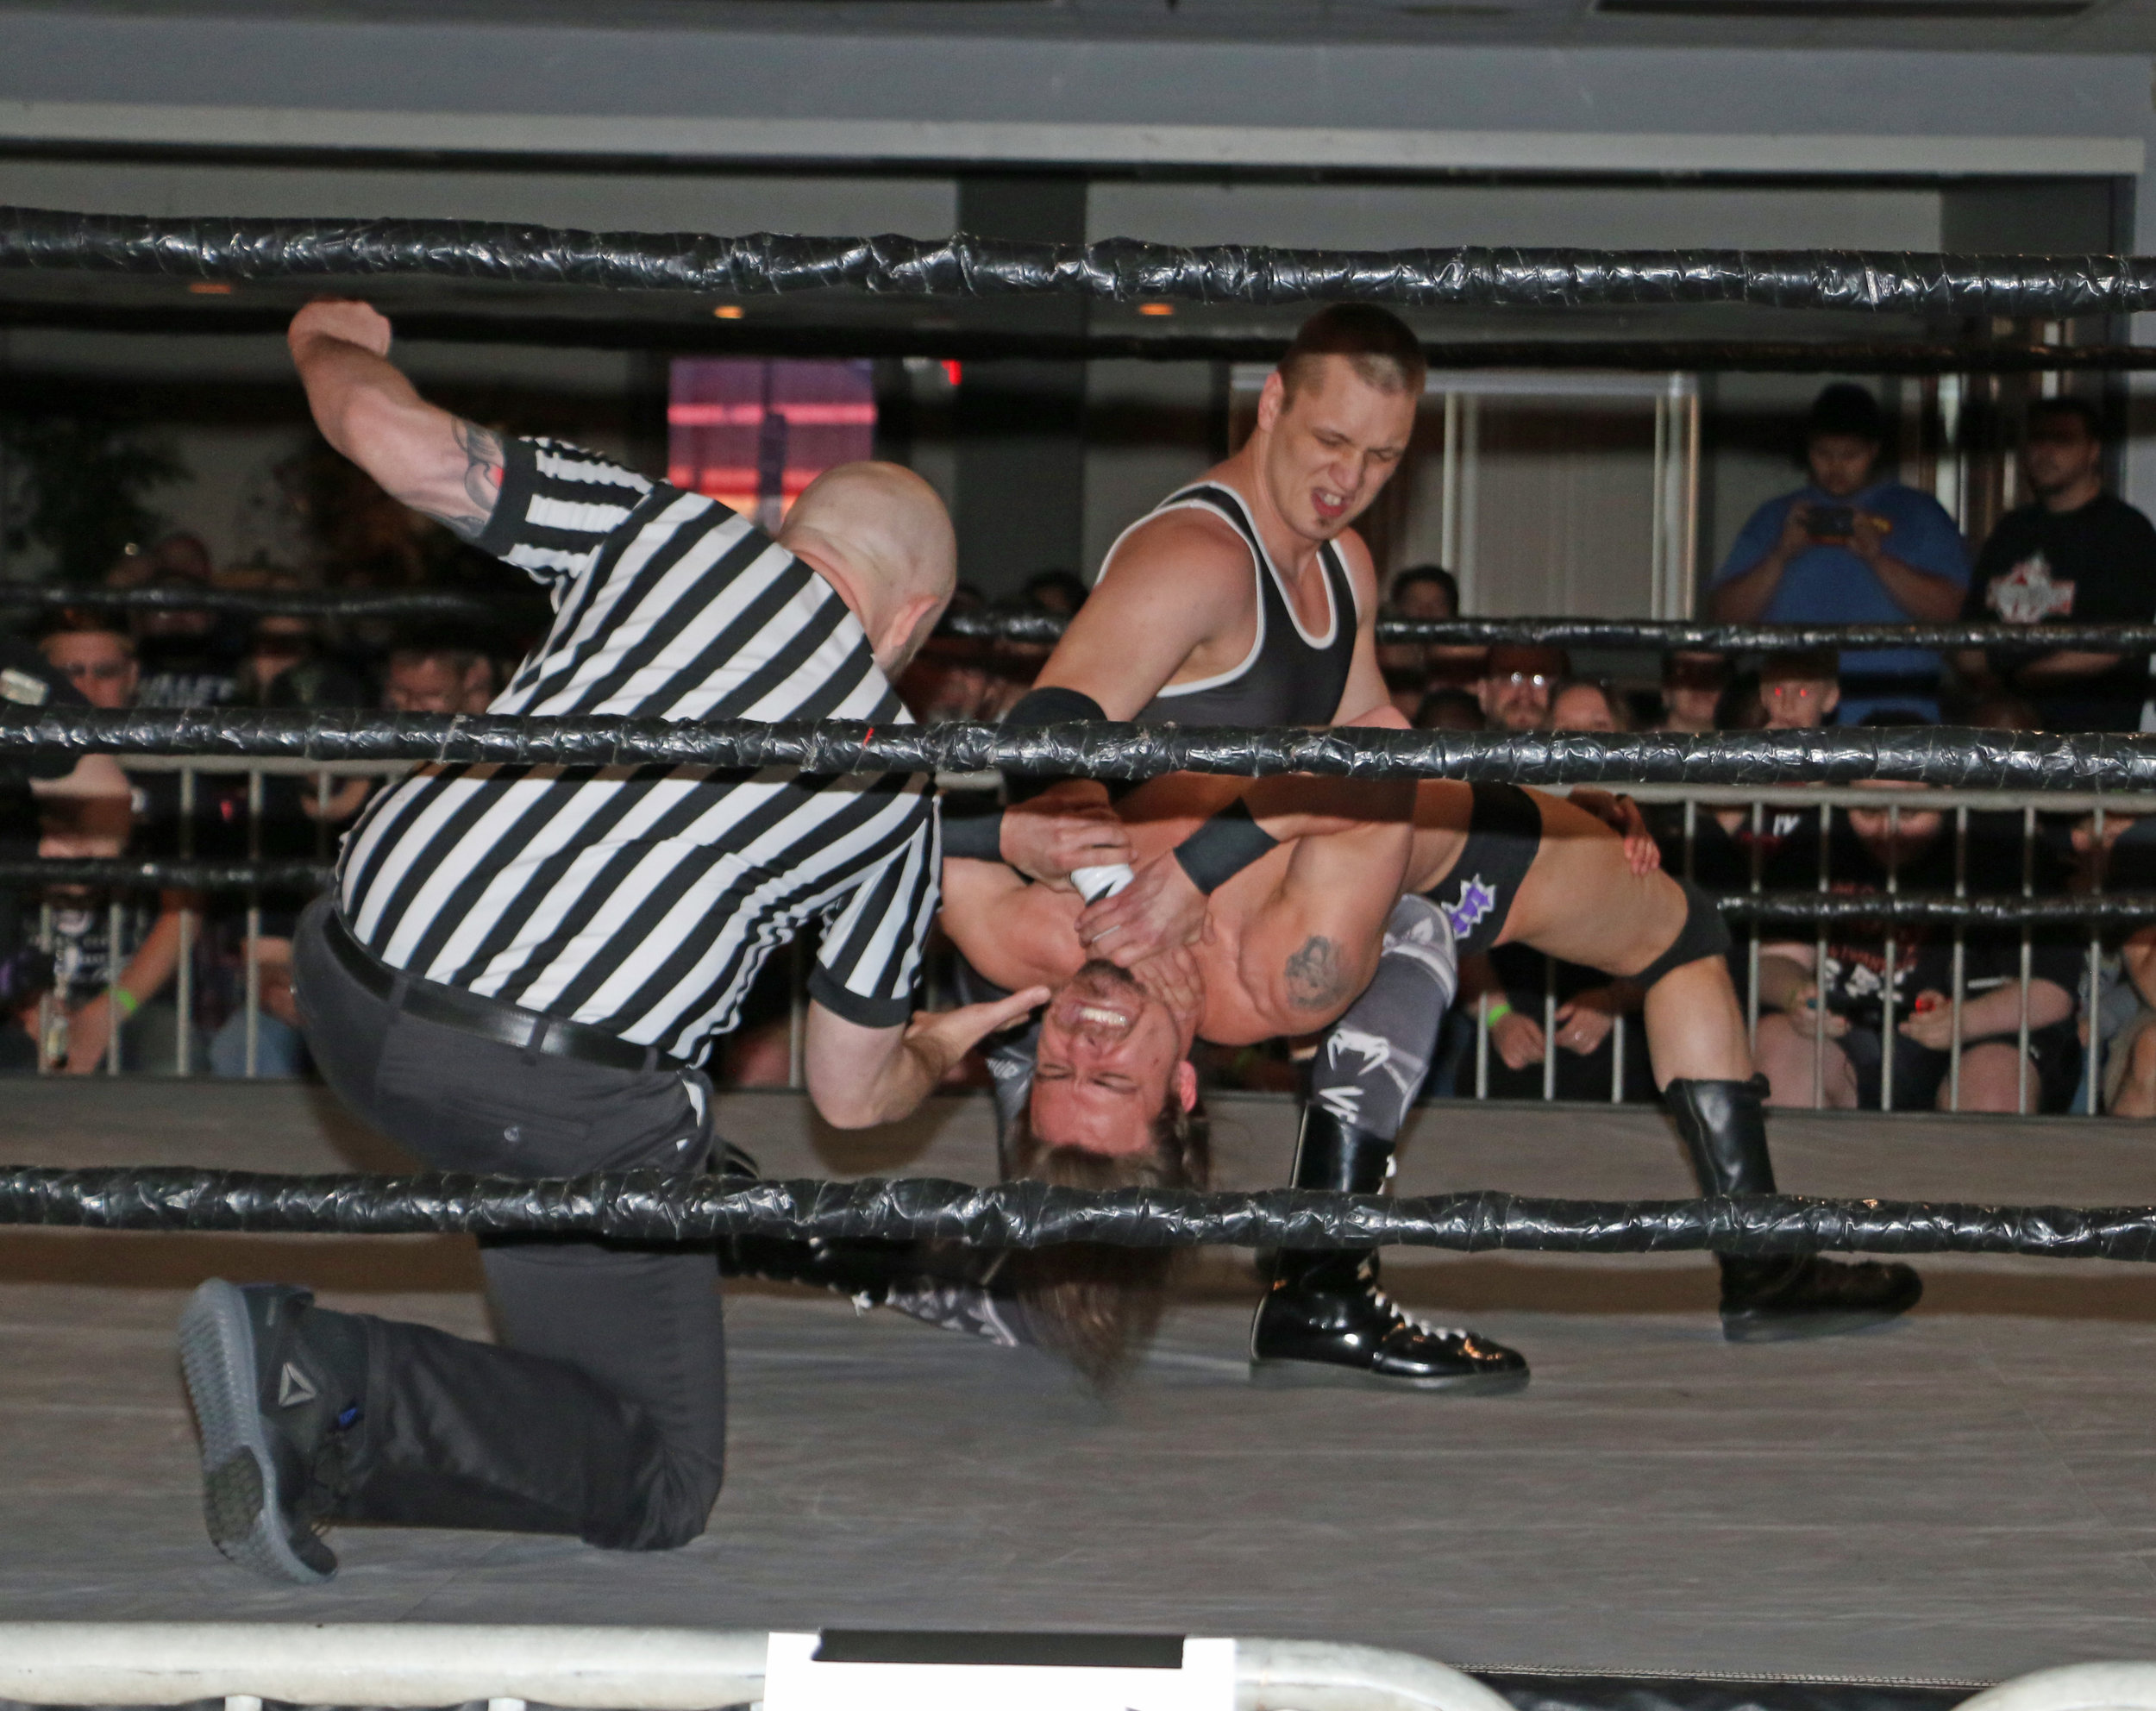 John Fate wears down William Jacobs as the referee checks in.